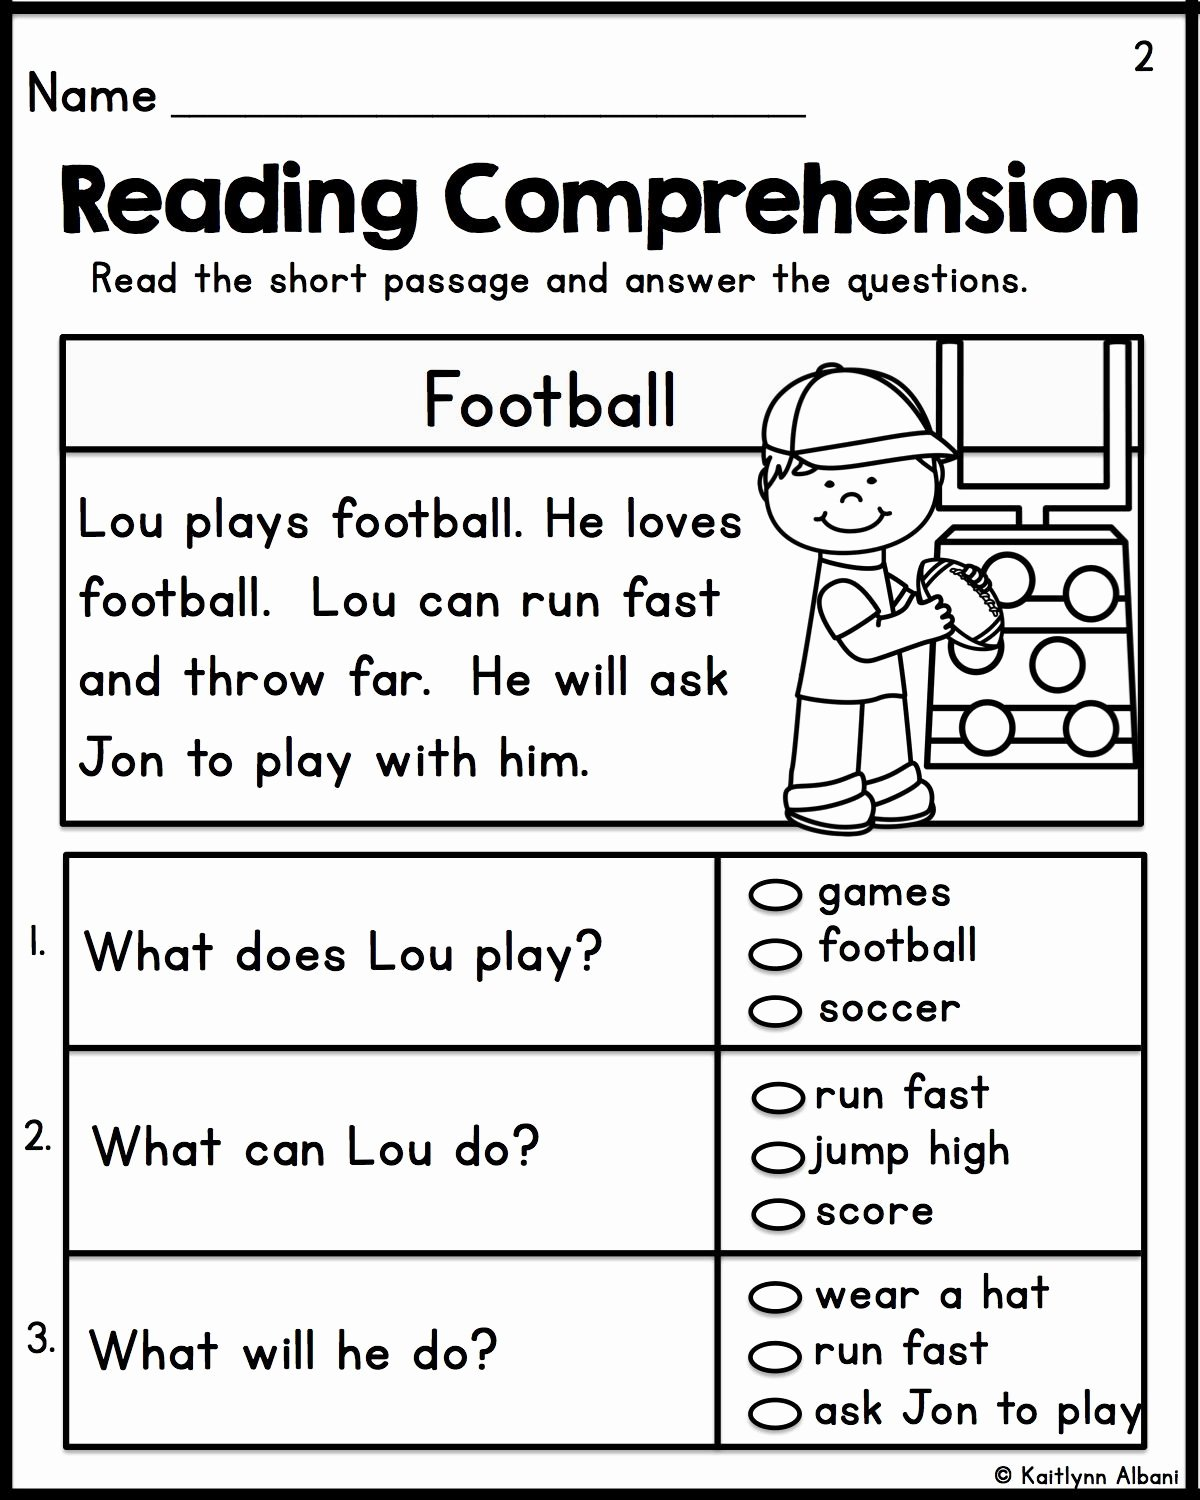 Easy Reading Worksheets for Preschoolers Lovely Kindergarten First Grade Simple Reading Prehension